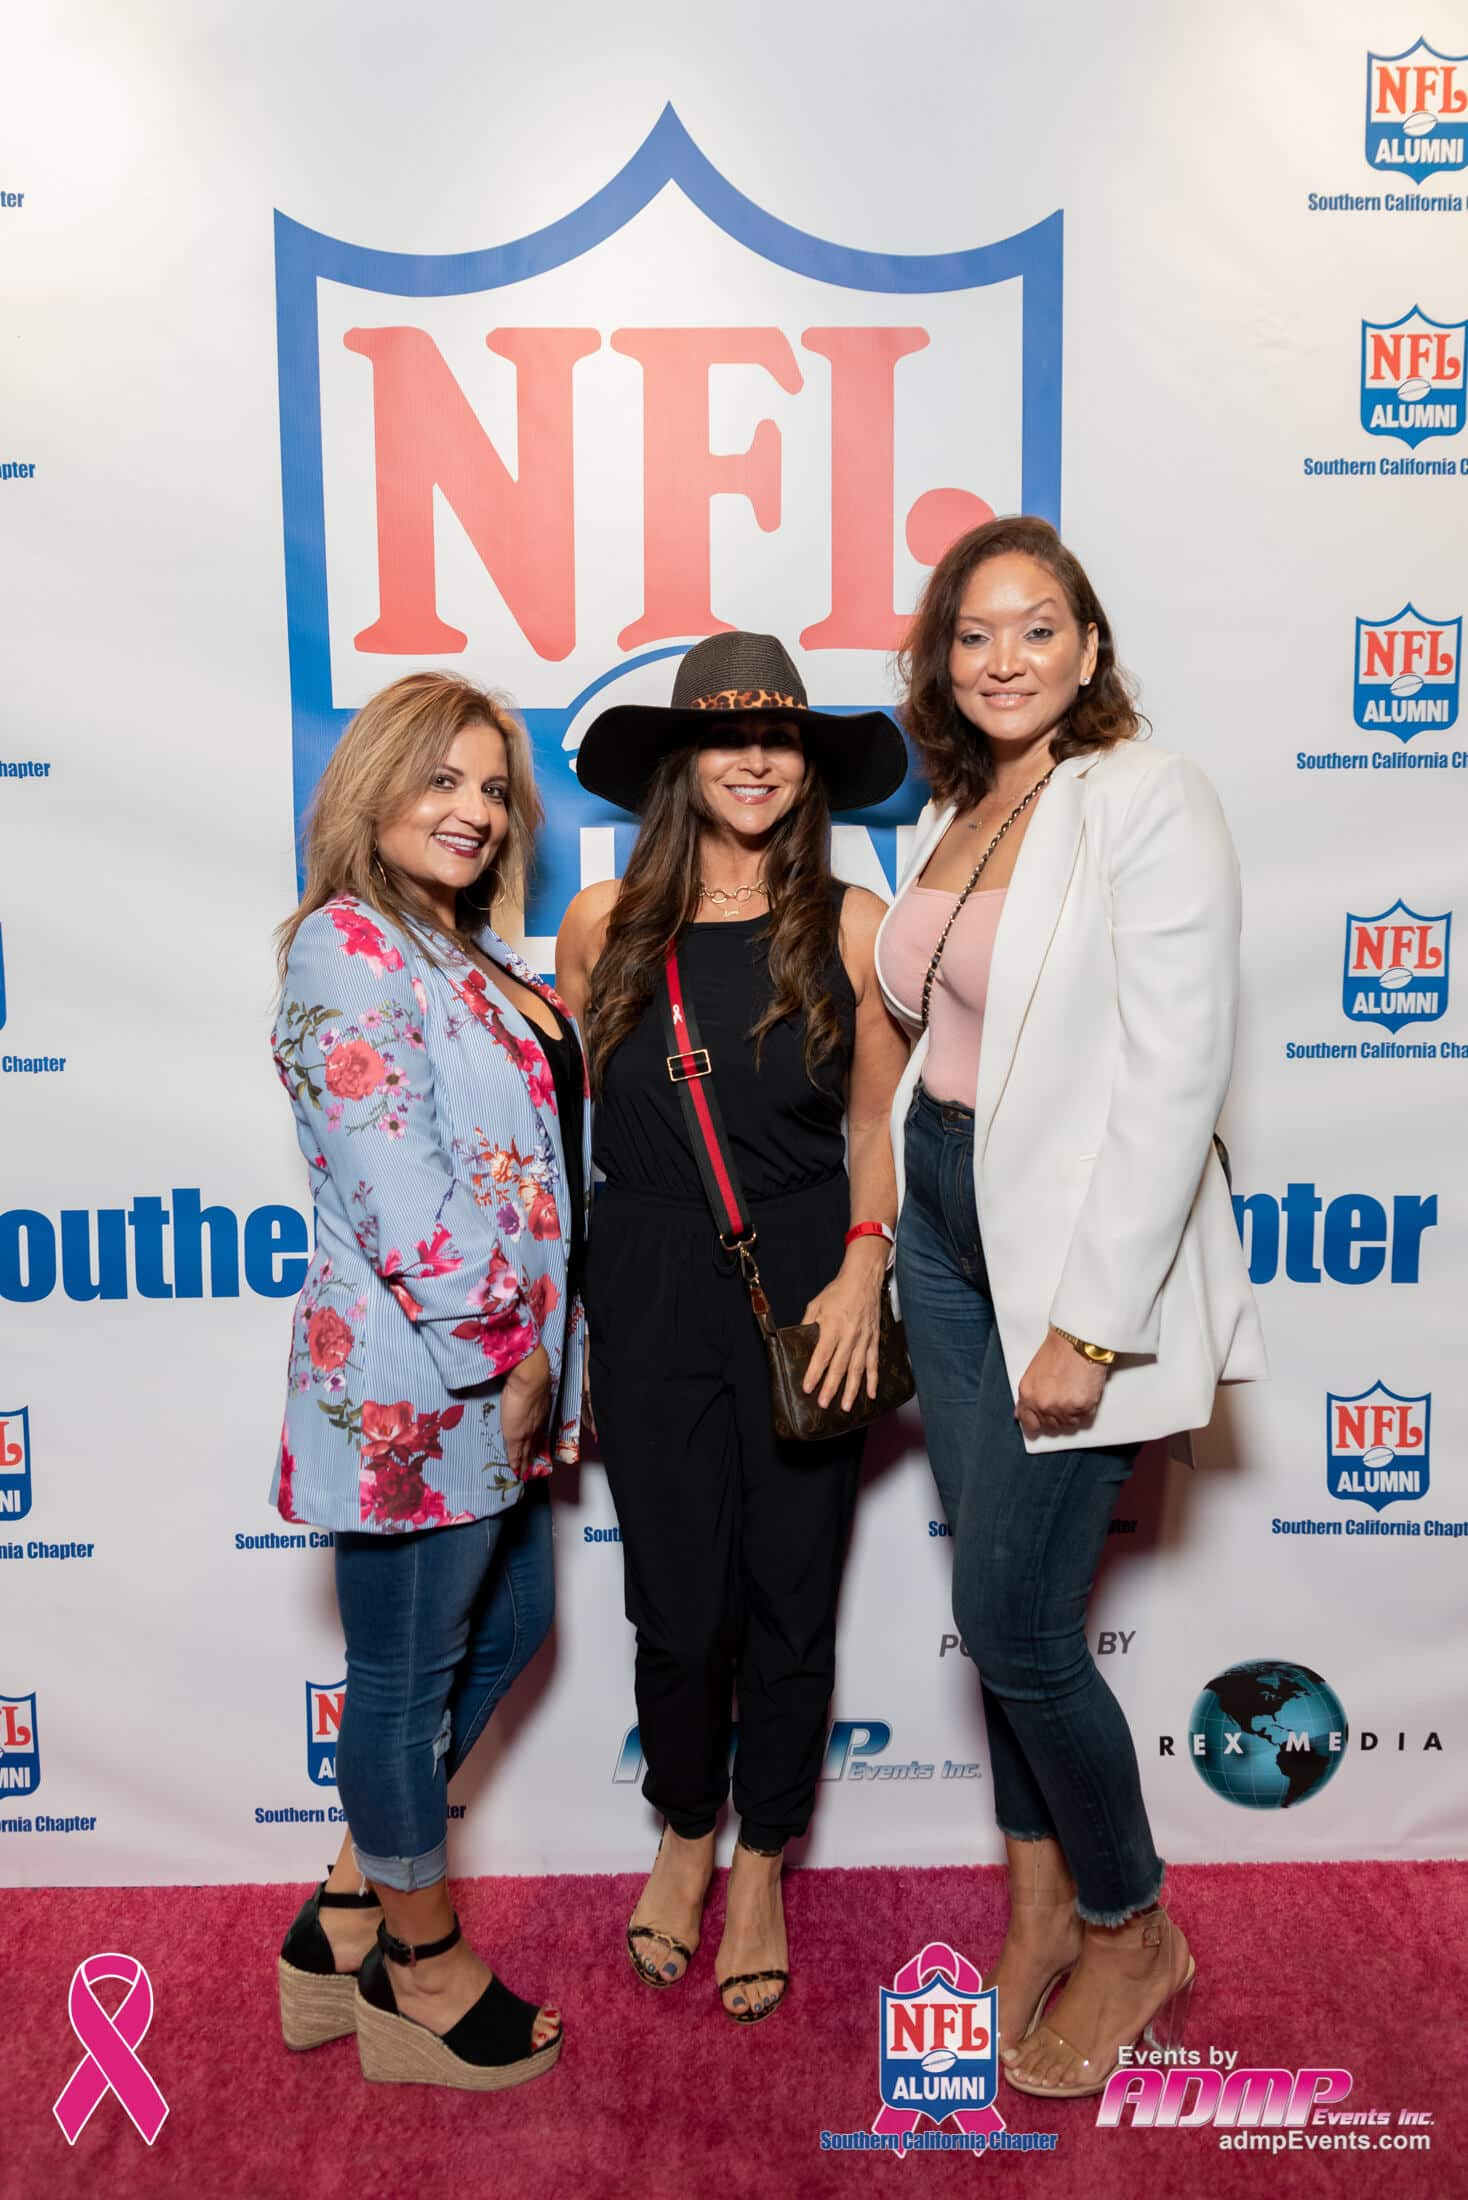 NFL Alumni SoCal Charity Event Series Breast Cancer Event 10-14-19-308